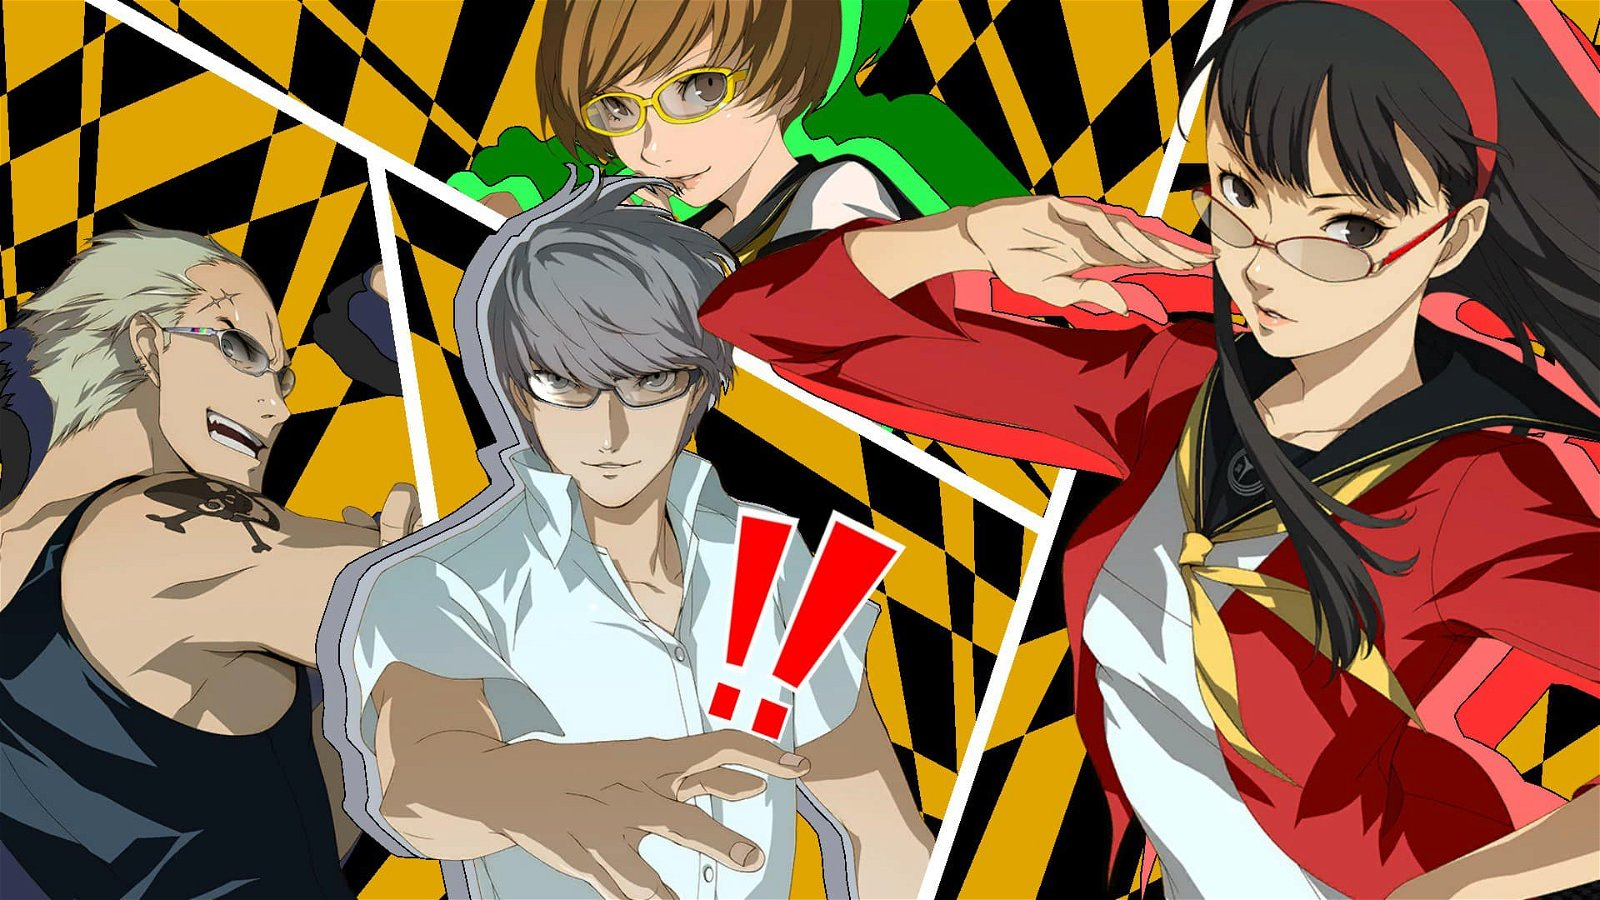 Persona 4 Golden (PC) Review